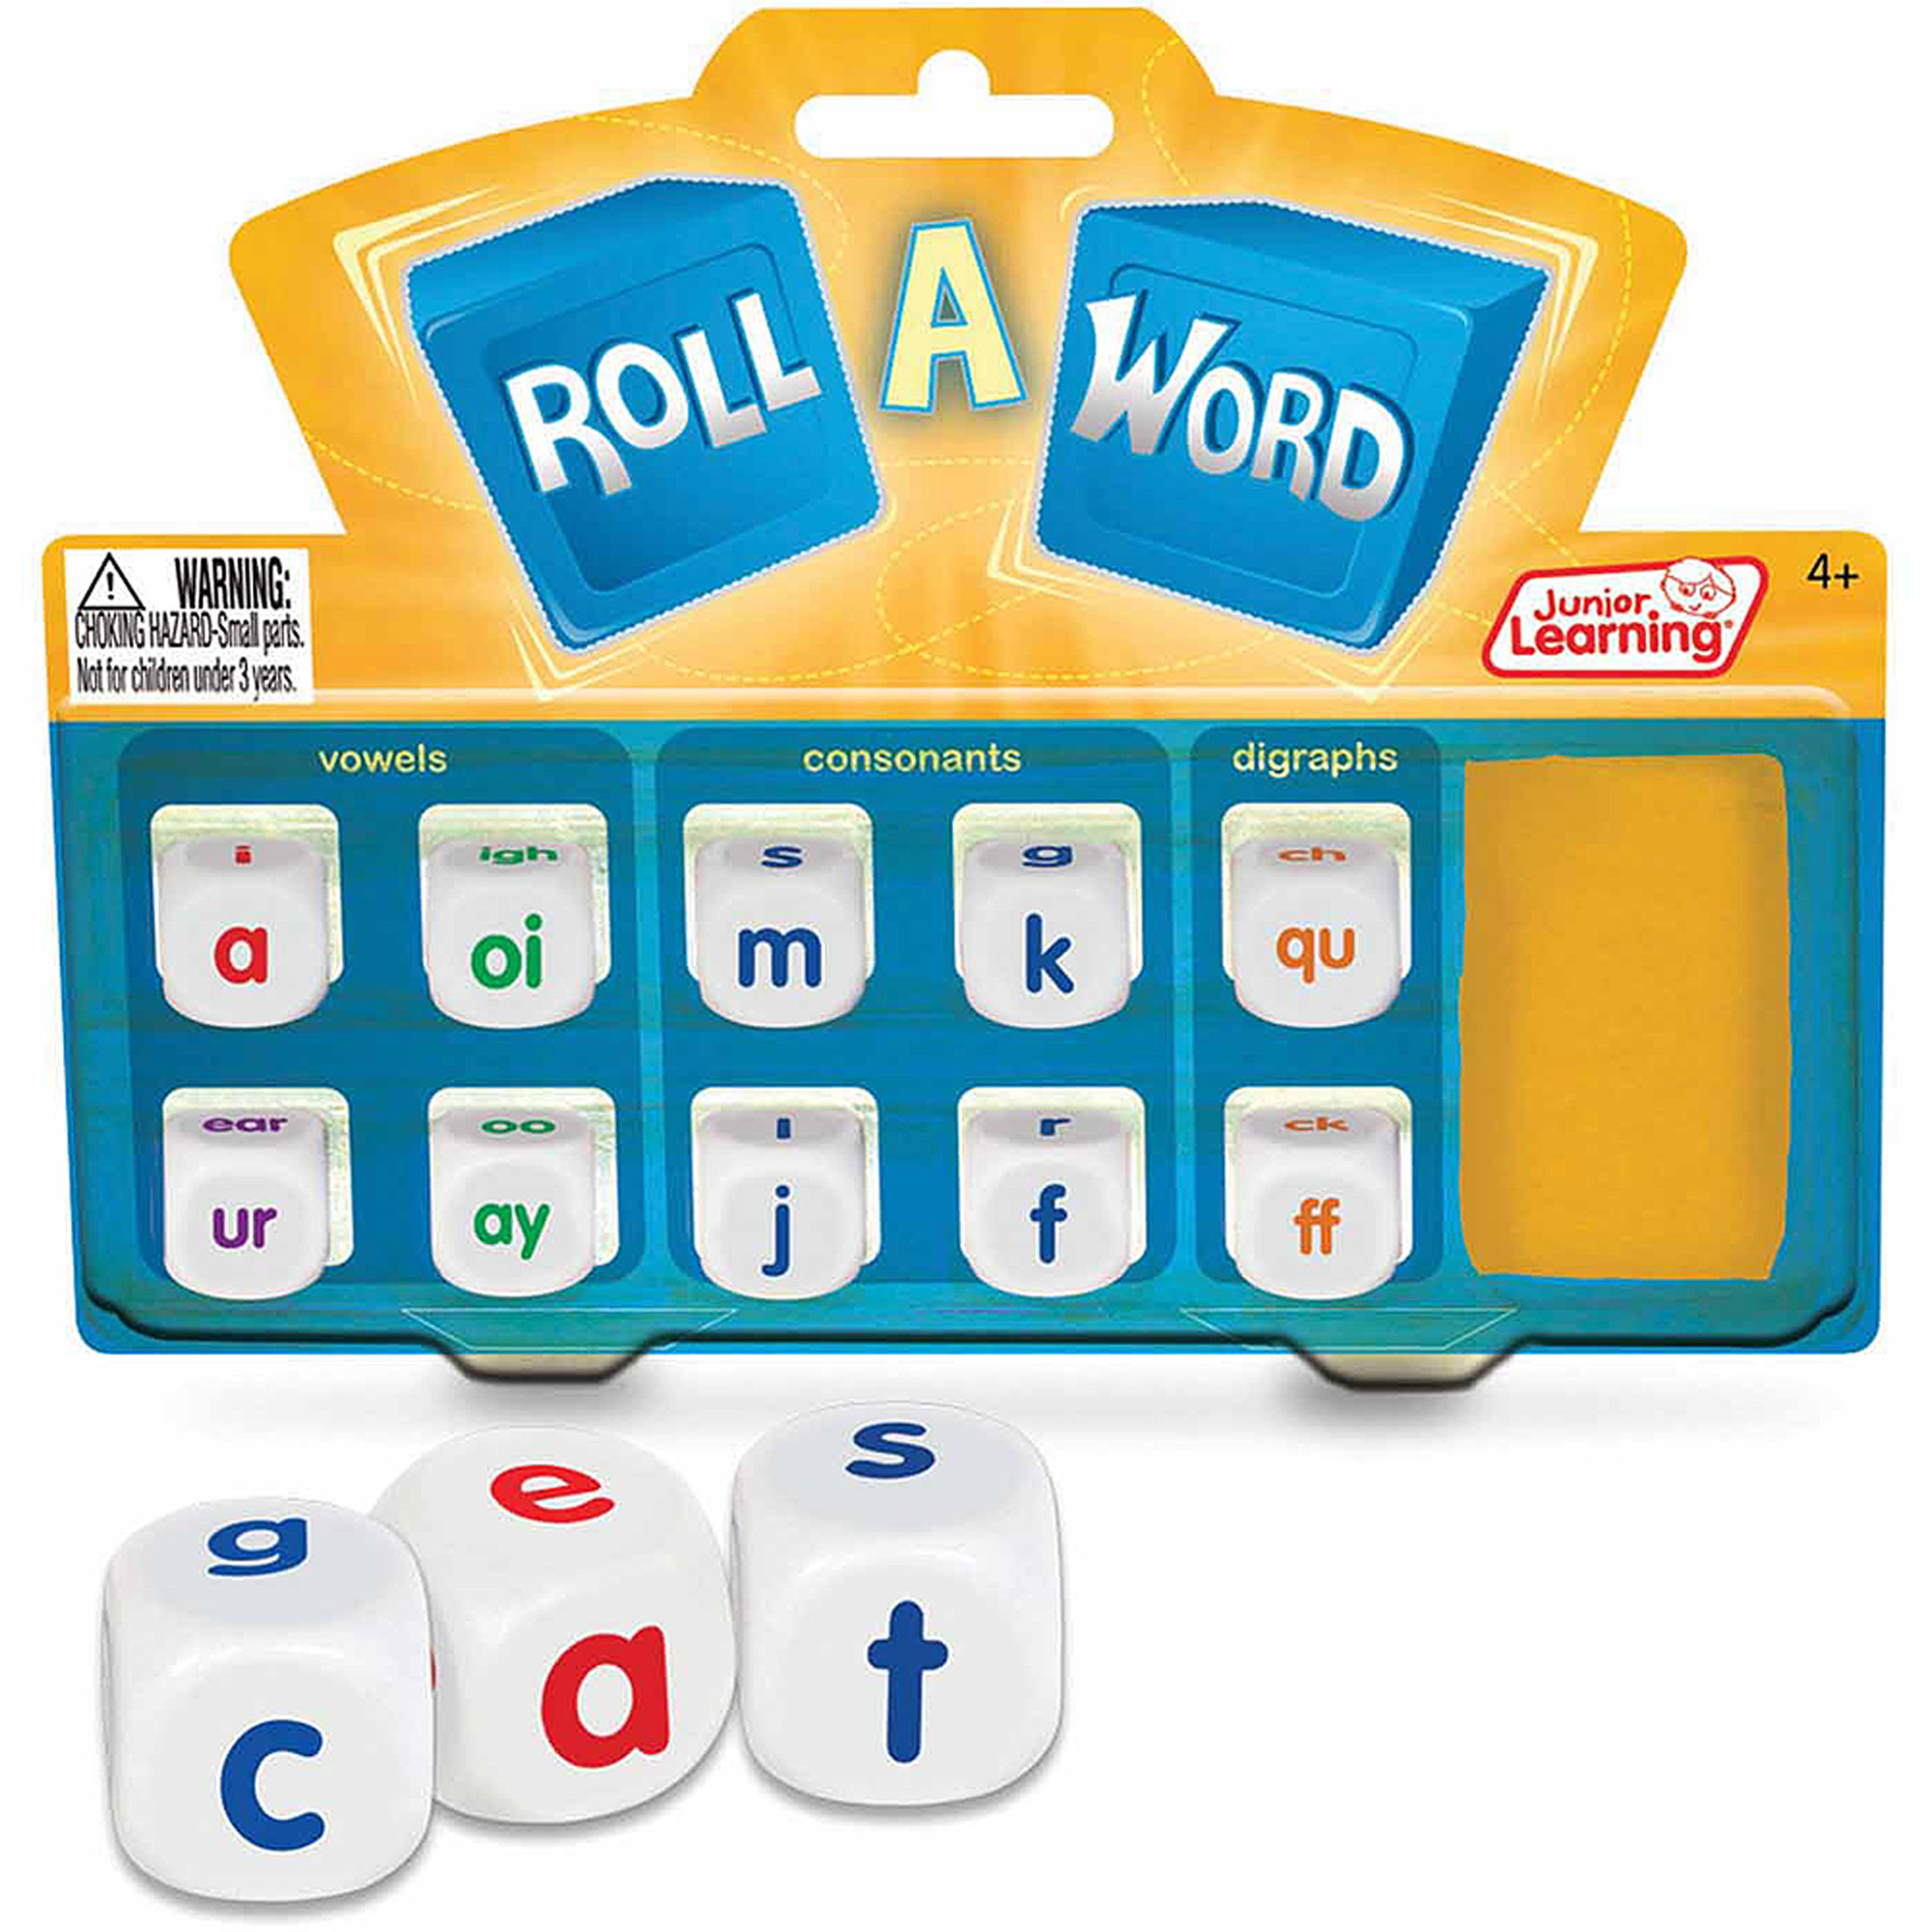 Junior Learning Roll a Word Game, Develop Spelling and Word Formation!